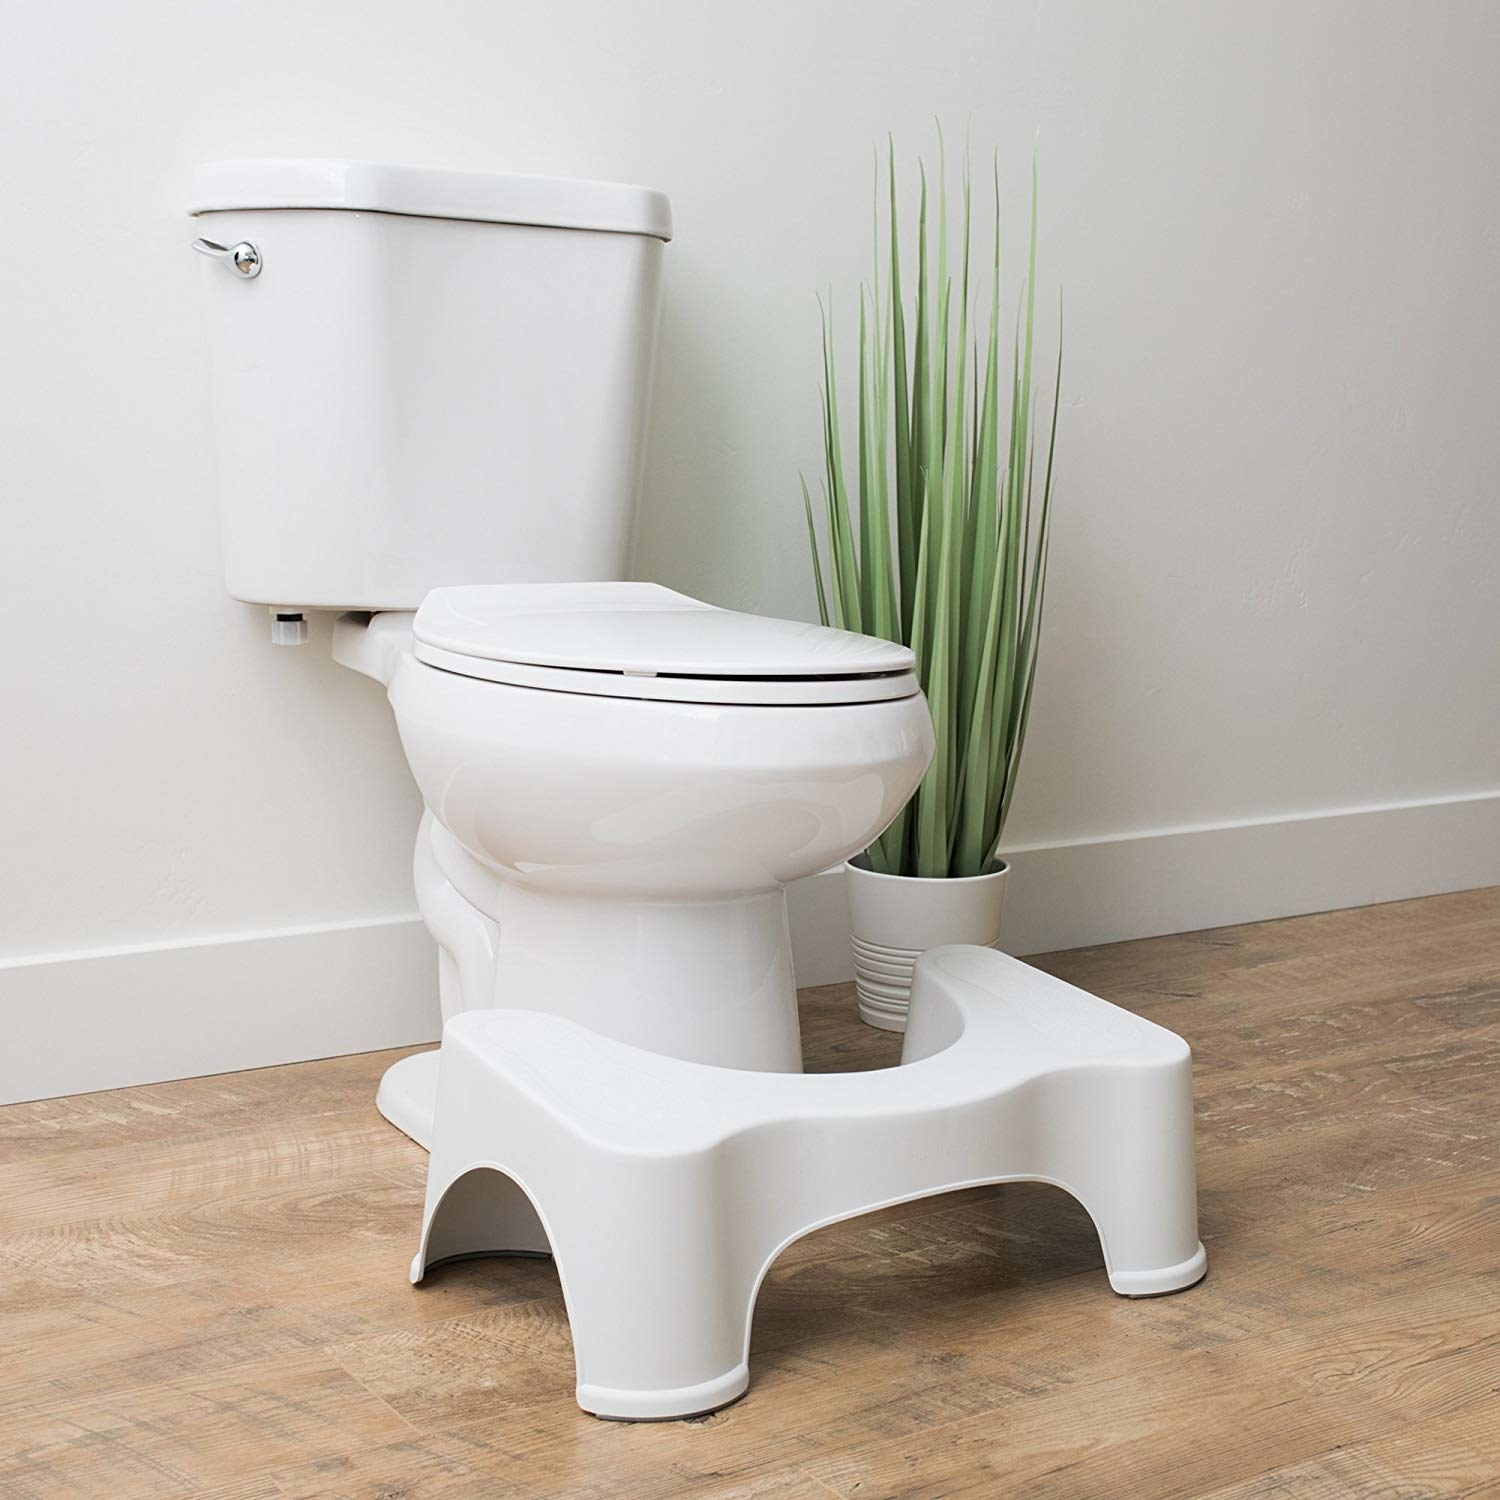 Stool in front of toilet